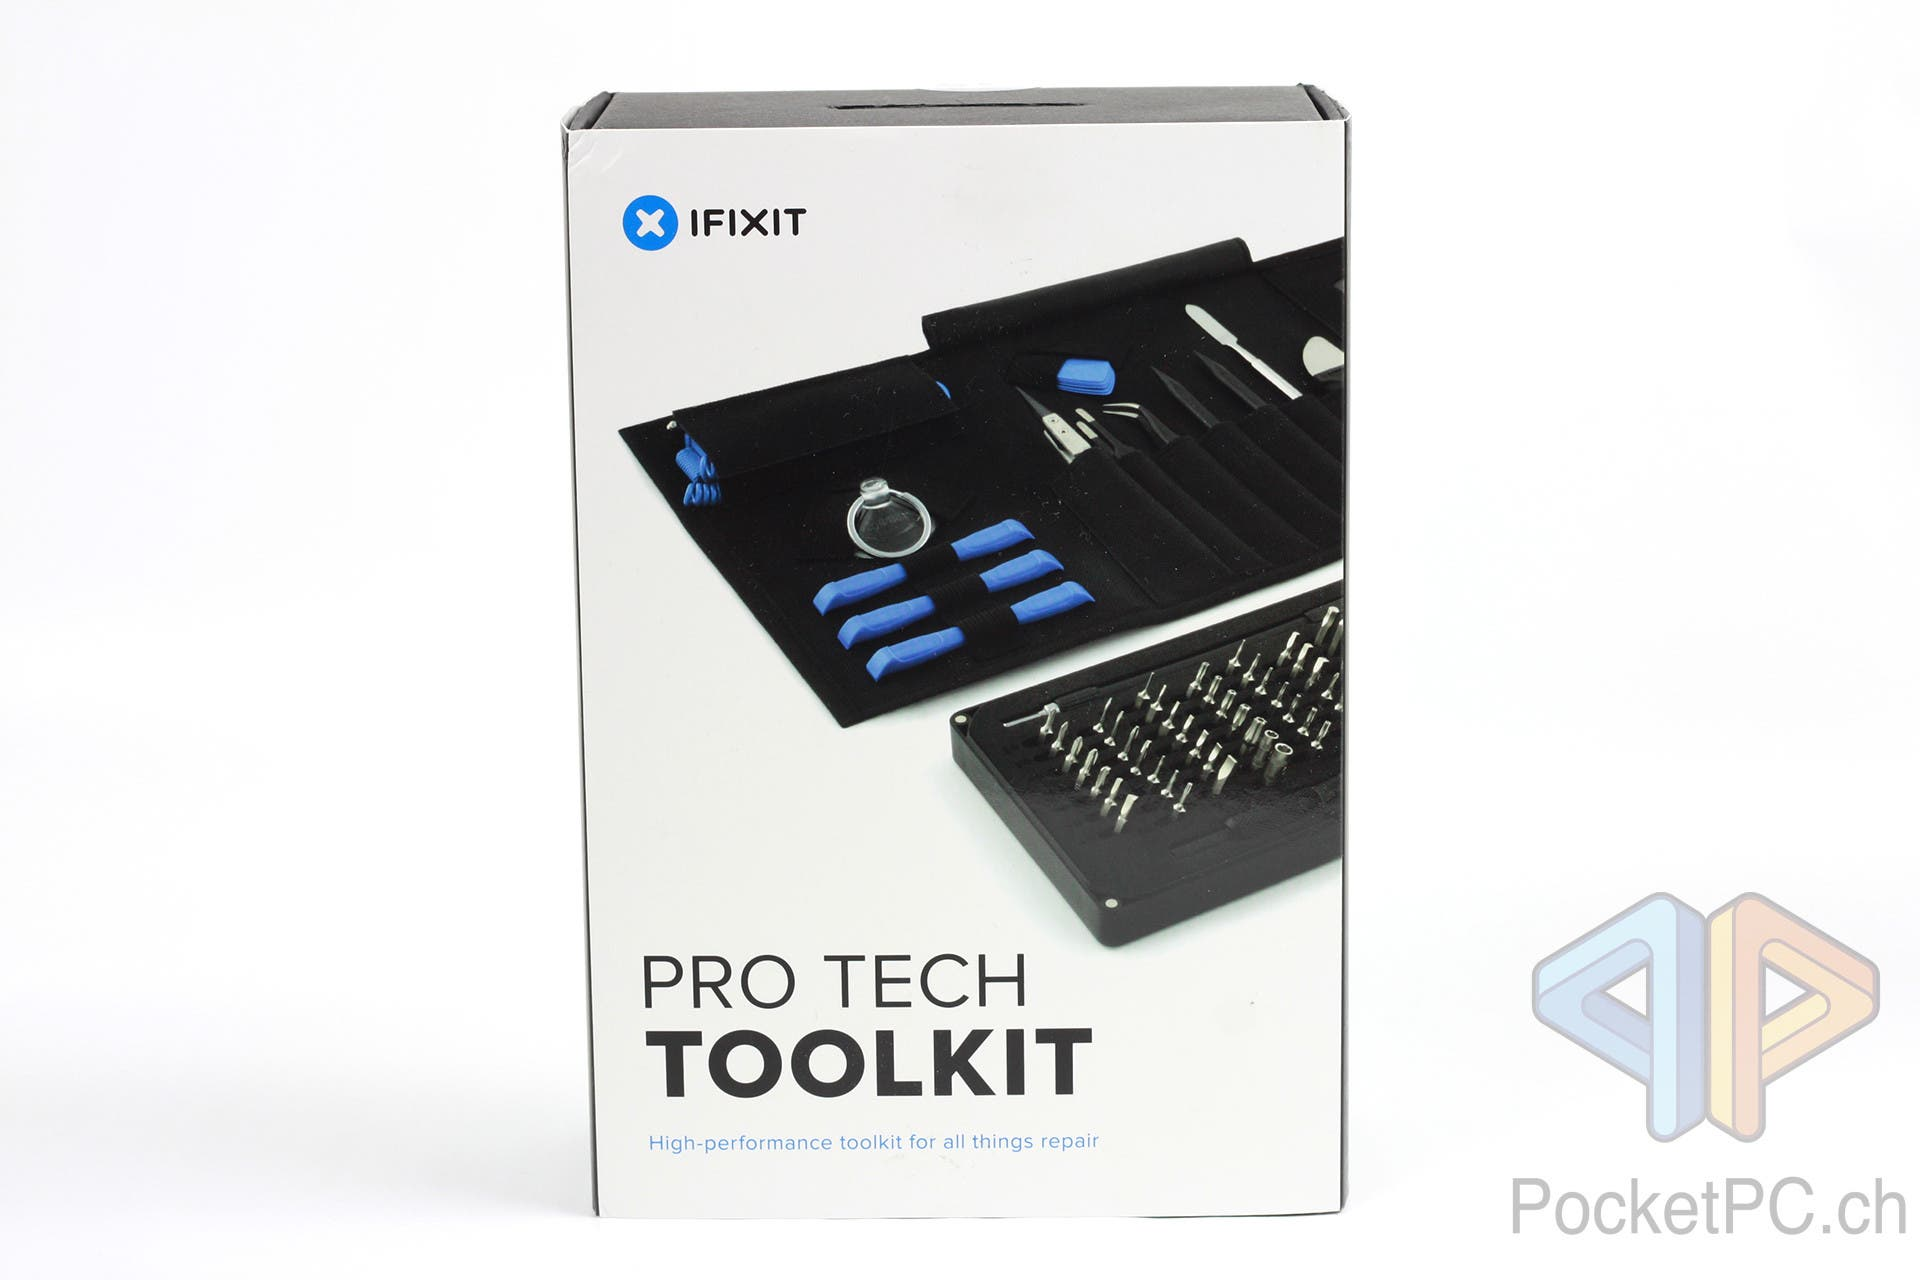 review das neue pro tech toolkit von ifixit im test vorgestellt. Black Bedroom Furniture Sets. Home Design Ideas